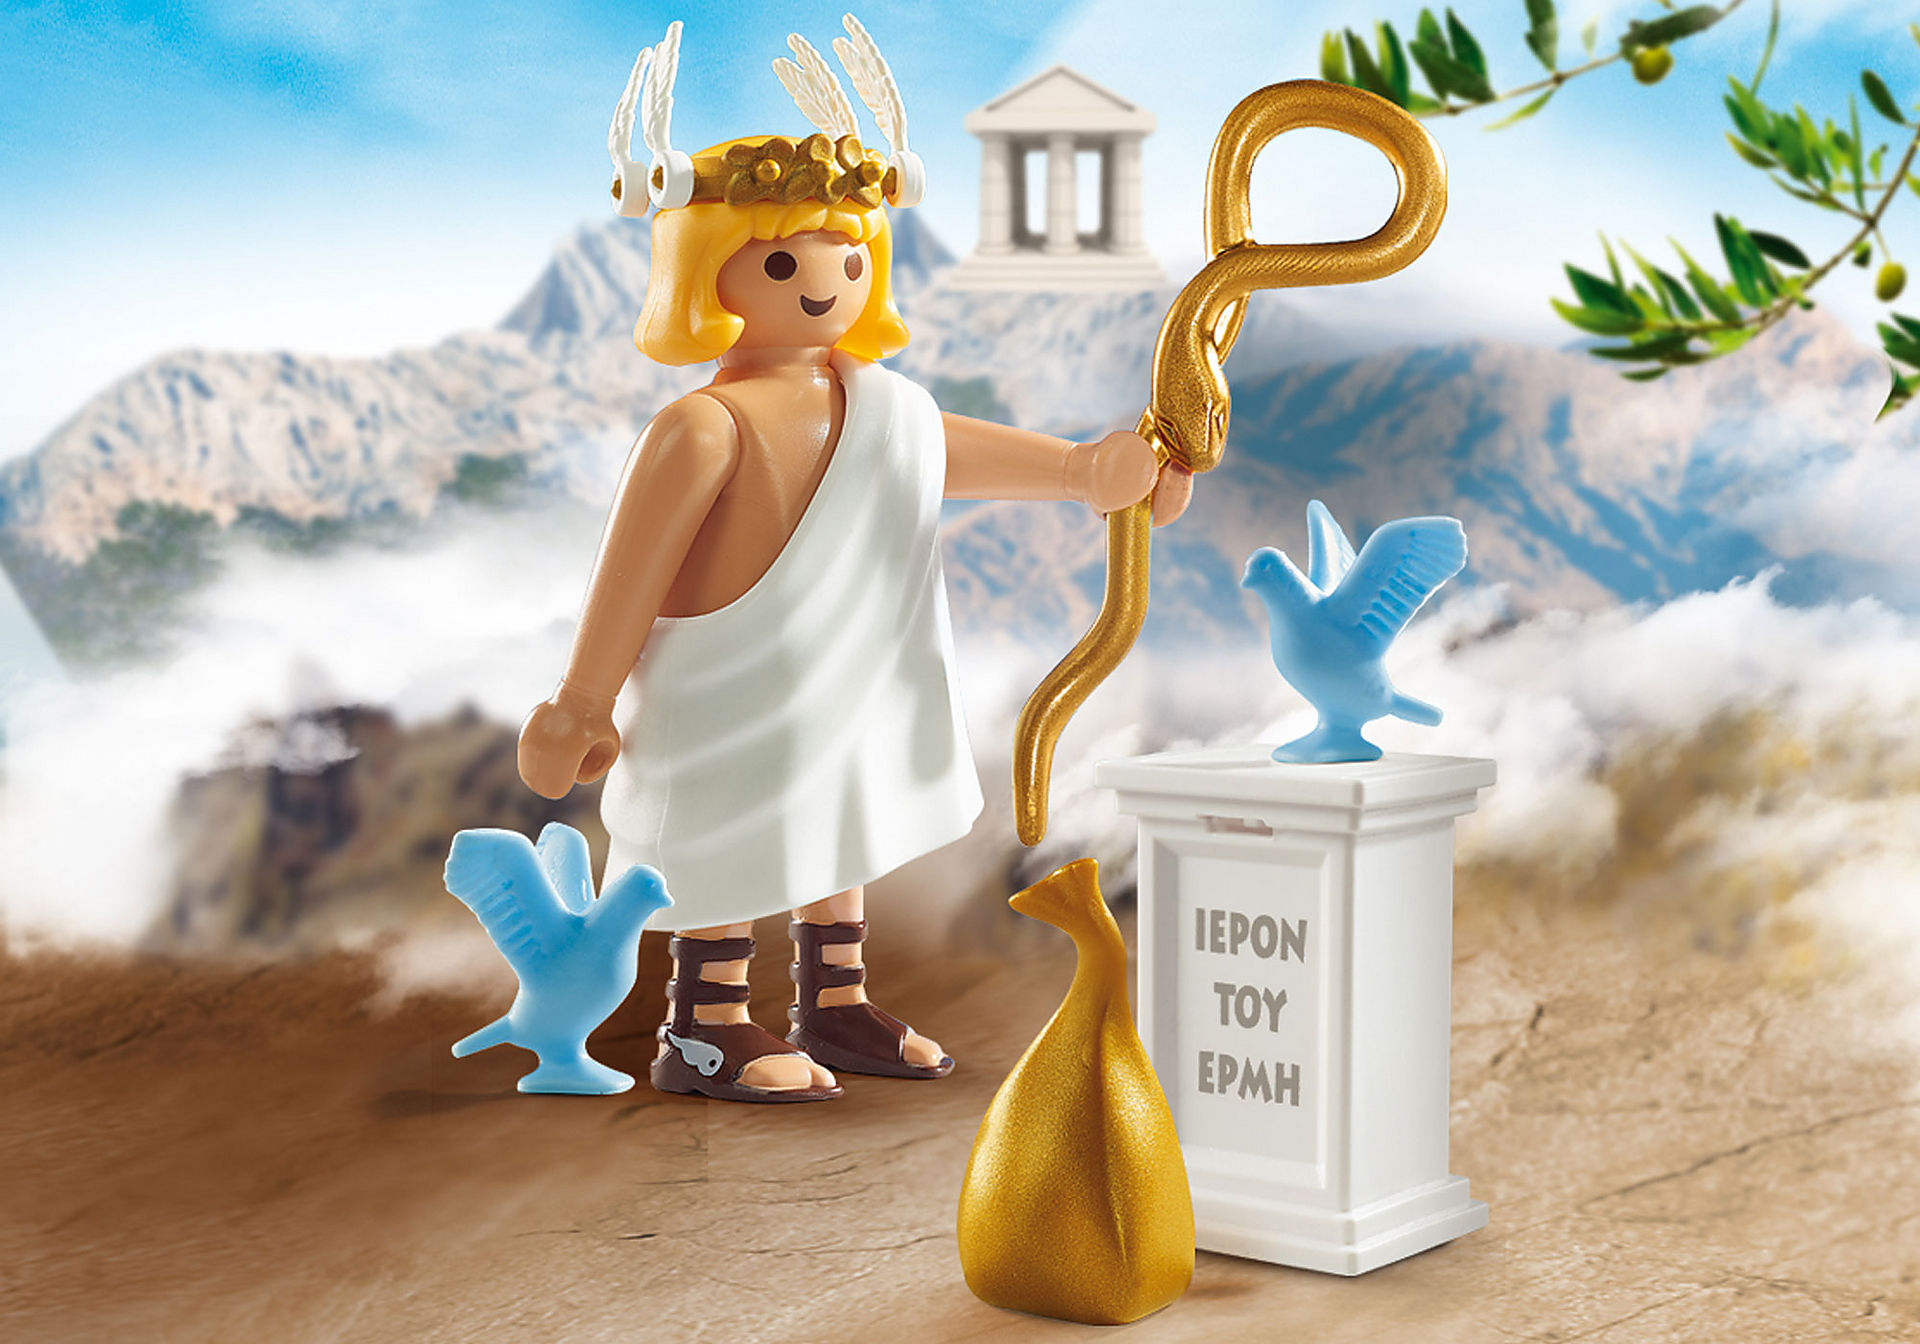 http://media.playmobil.com/i/playmobil/9524_product_detail/Hermes